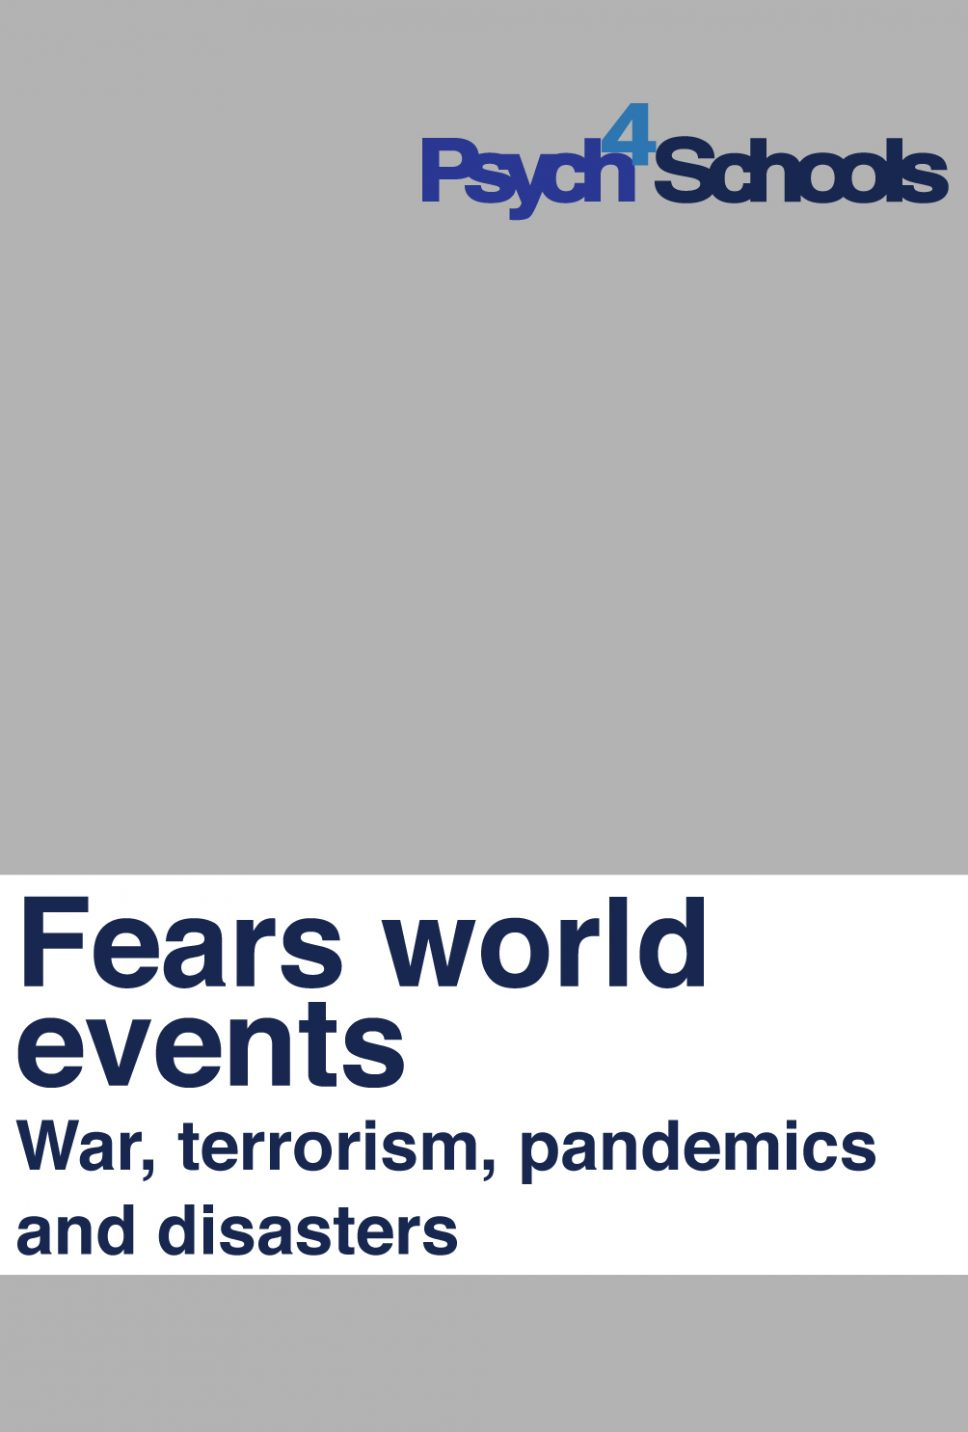 FEARS-WORLD-EVENTS